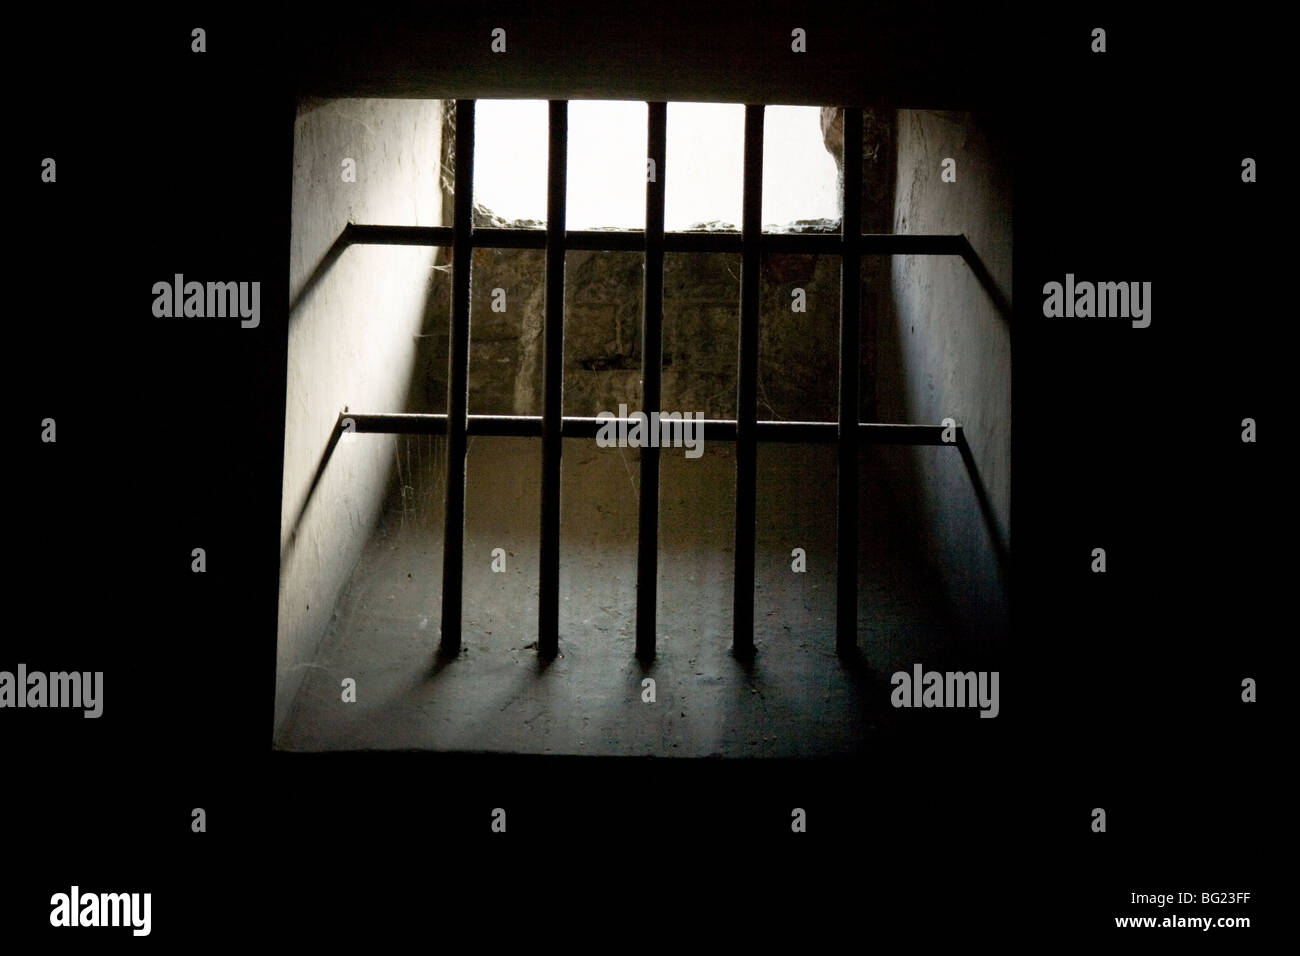 Barred prison cell window at Auschwitz Nazi death camp in Oswiecim, Poland. - Stock Image